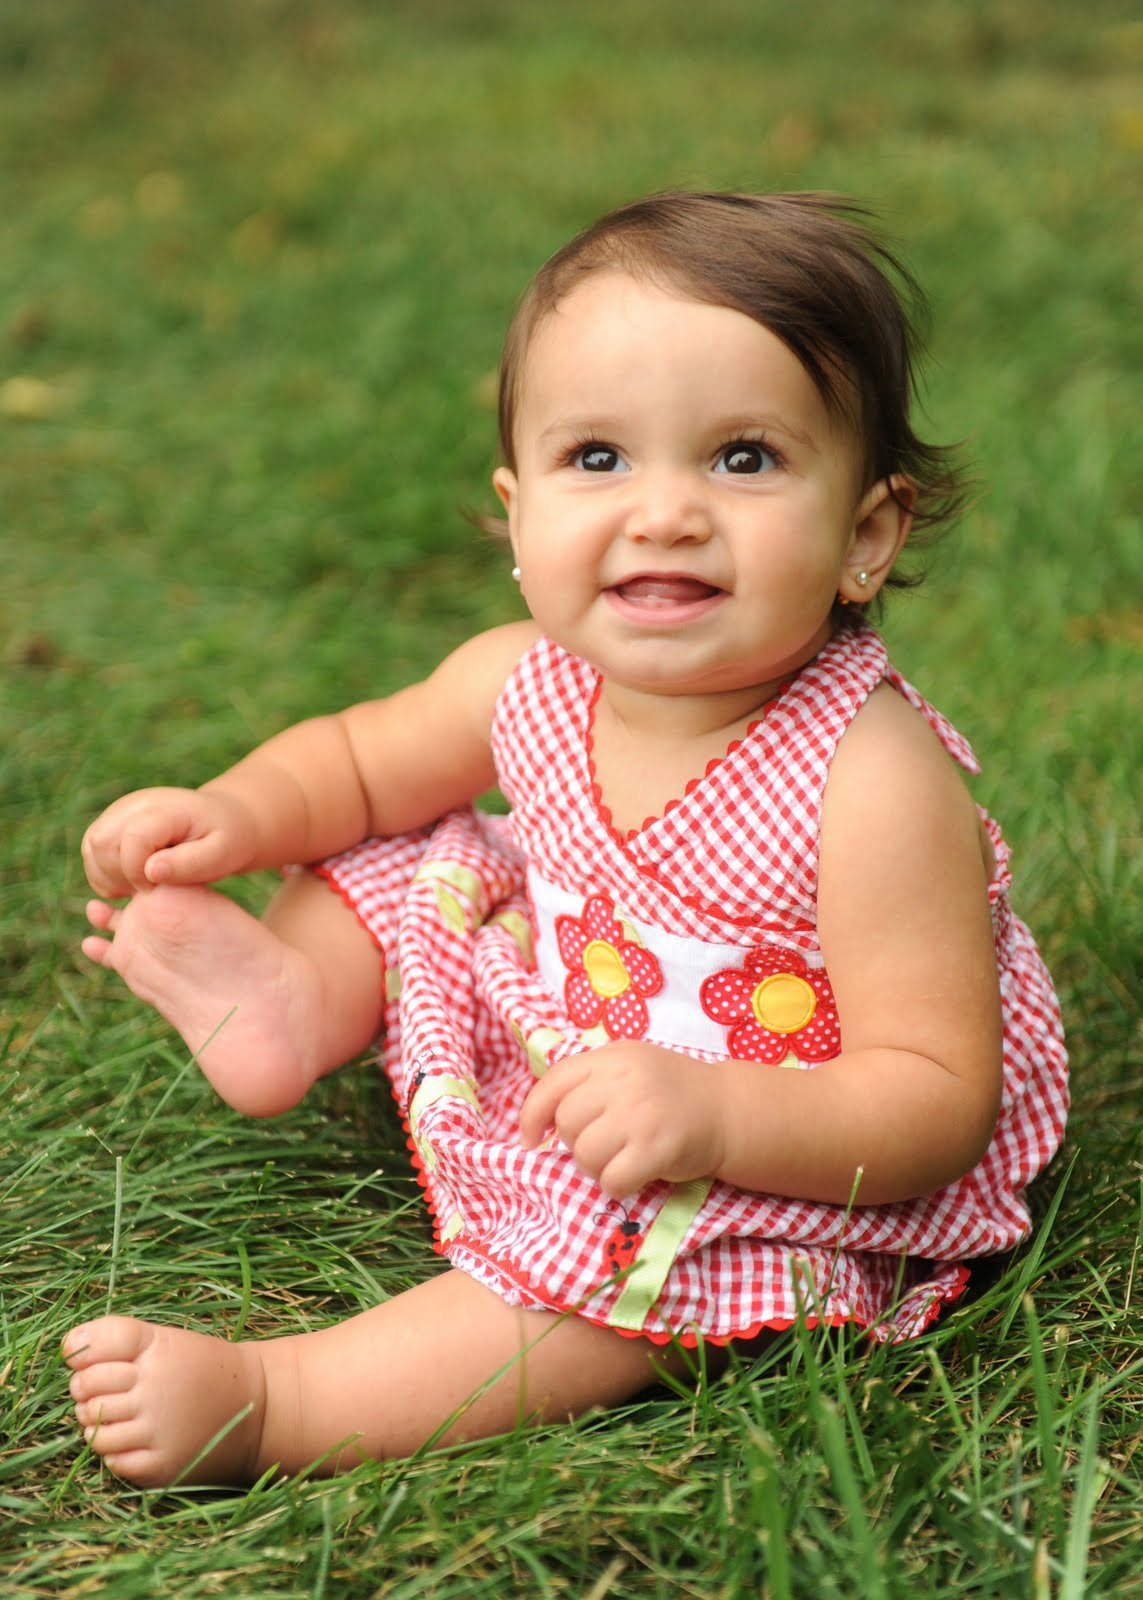 New Desiree Stover Photography One Year Old Baby Gianna Ideas With Pictures Original 1024 x 768